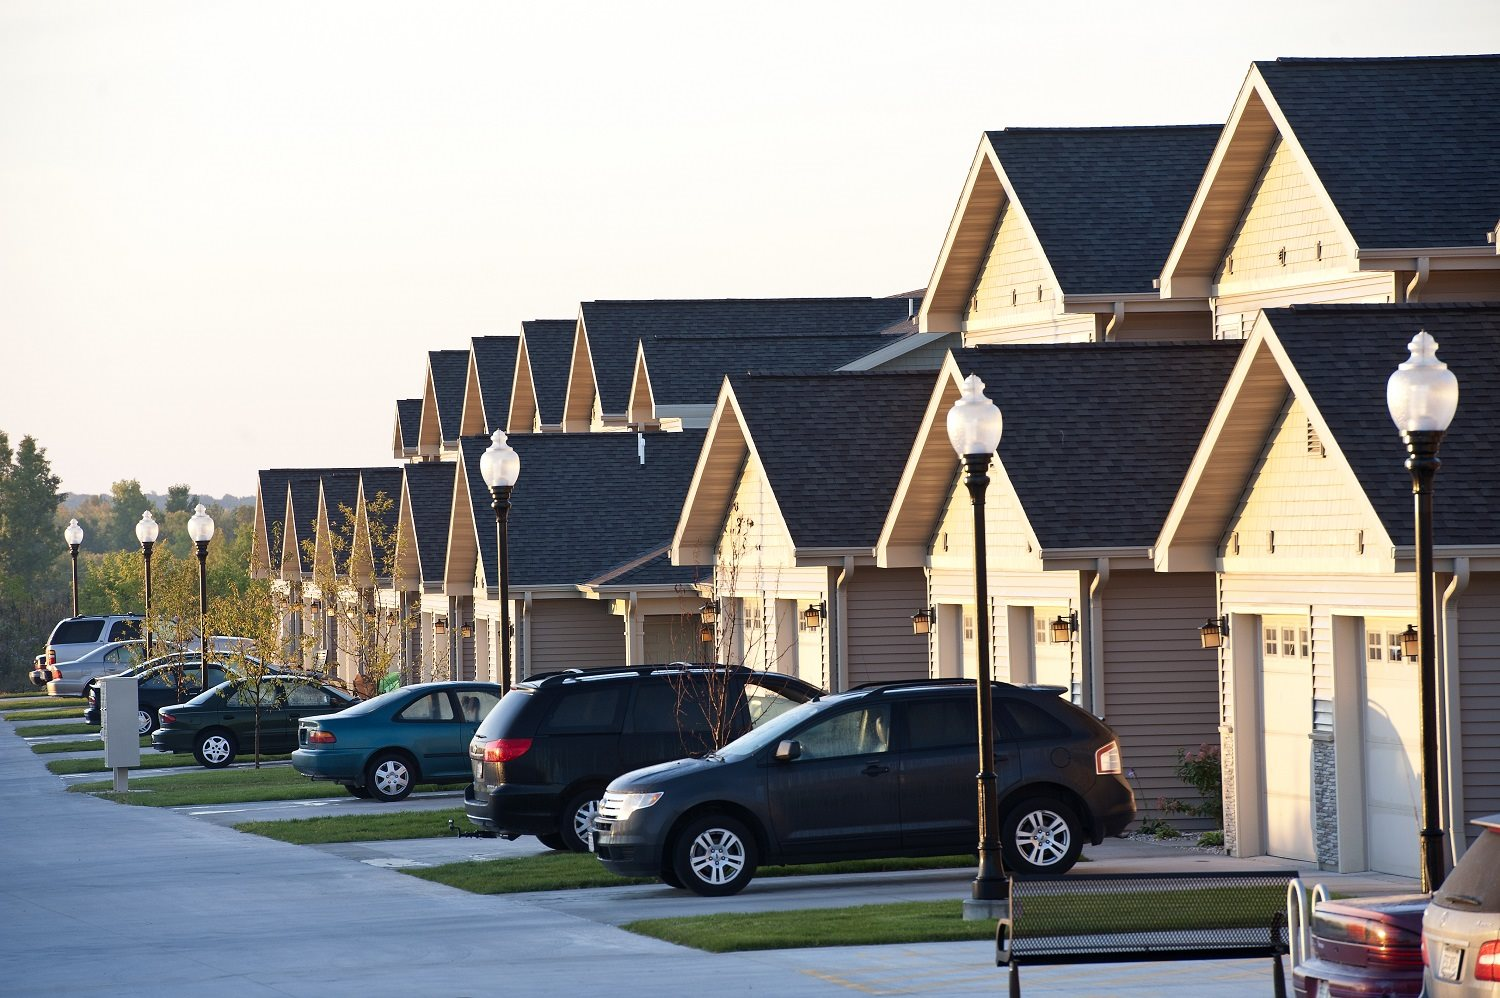 Image of Pleasant View Townhomes in Plymouth, Wisconsin